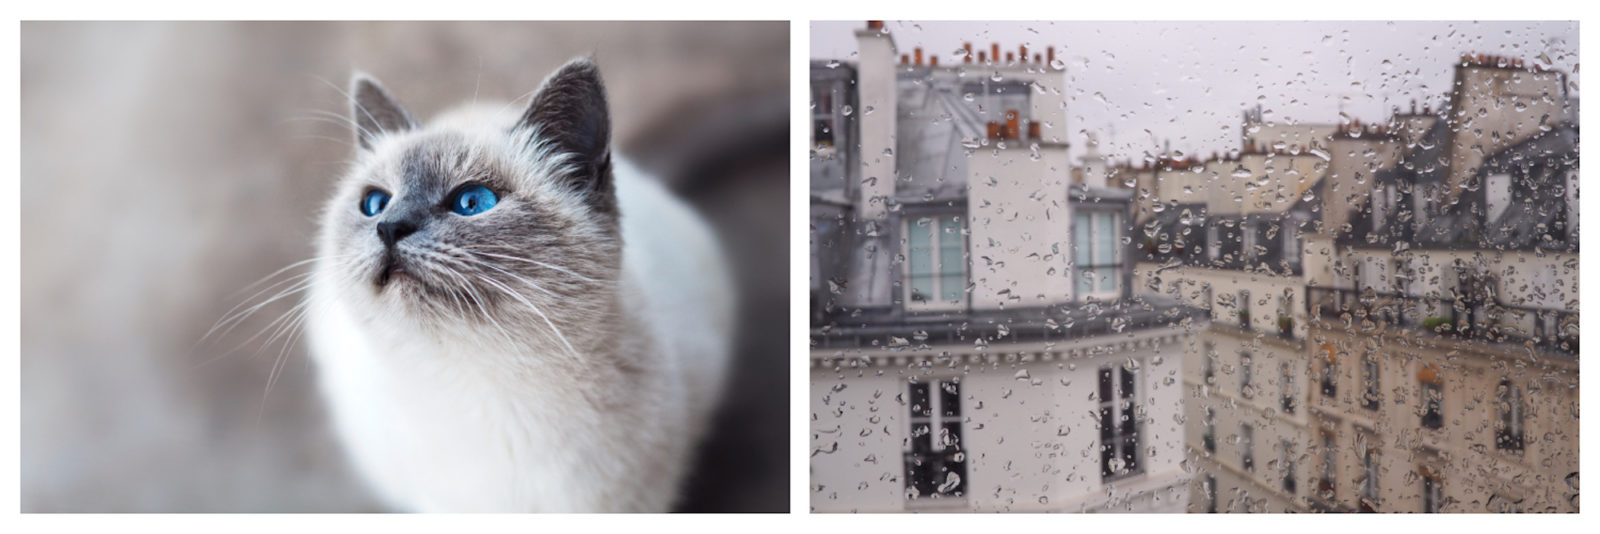 Fluffy Siamese kitty cat with blue eyes (left) and view of the rain on Paris rooftops through the window (right).